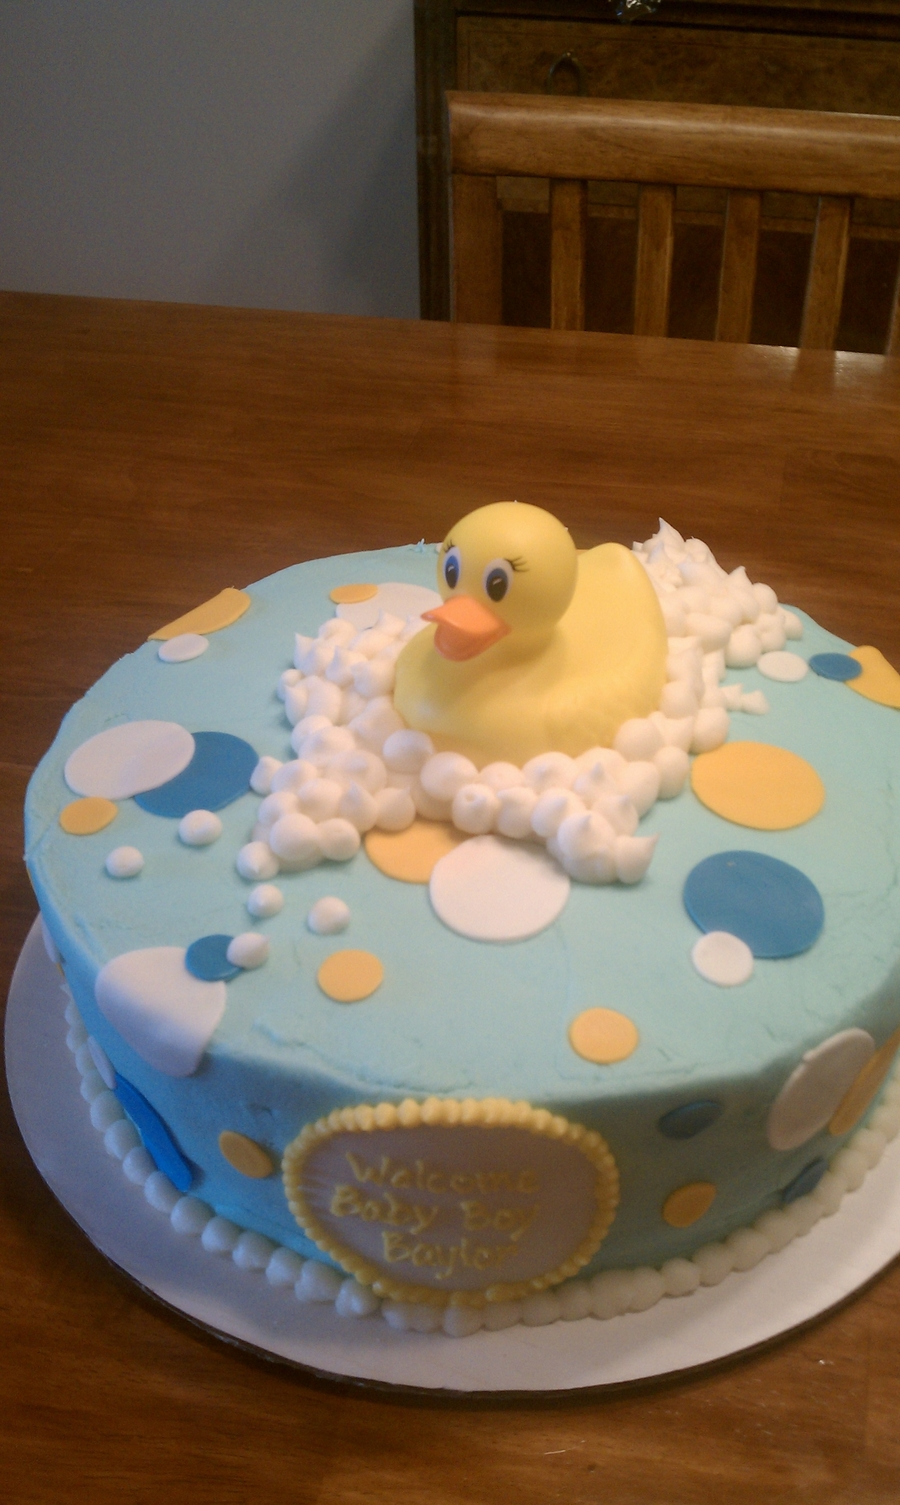 Rubber Duckie You're My Pal on Cake Central